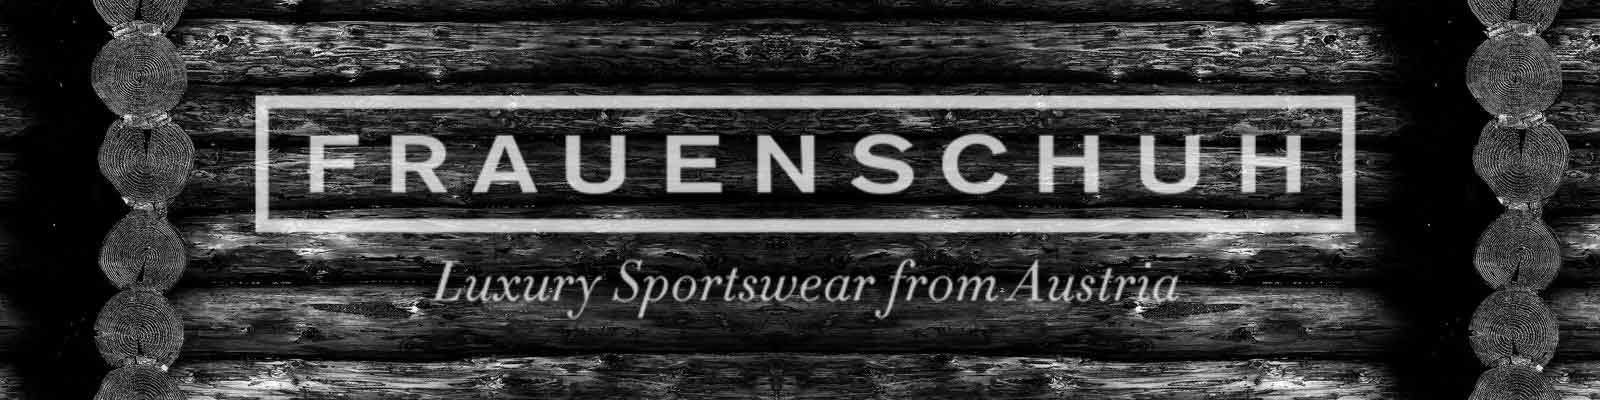 Frauenschuh Sportswear and ski wear